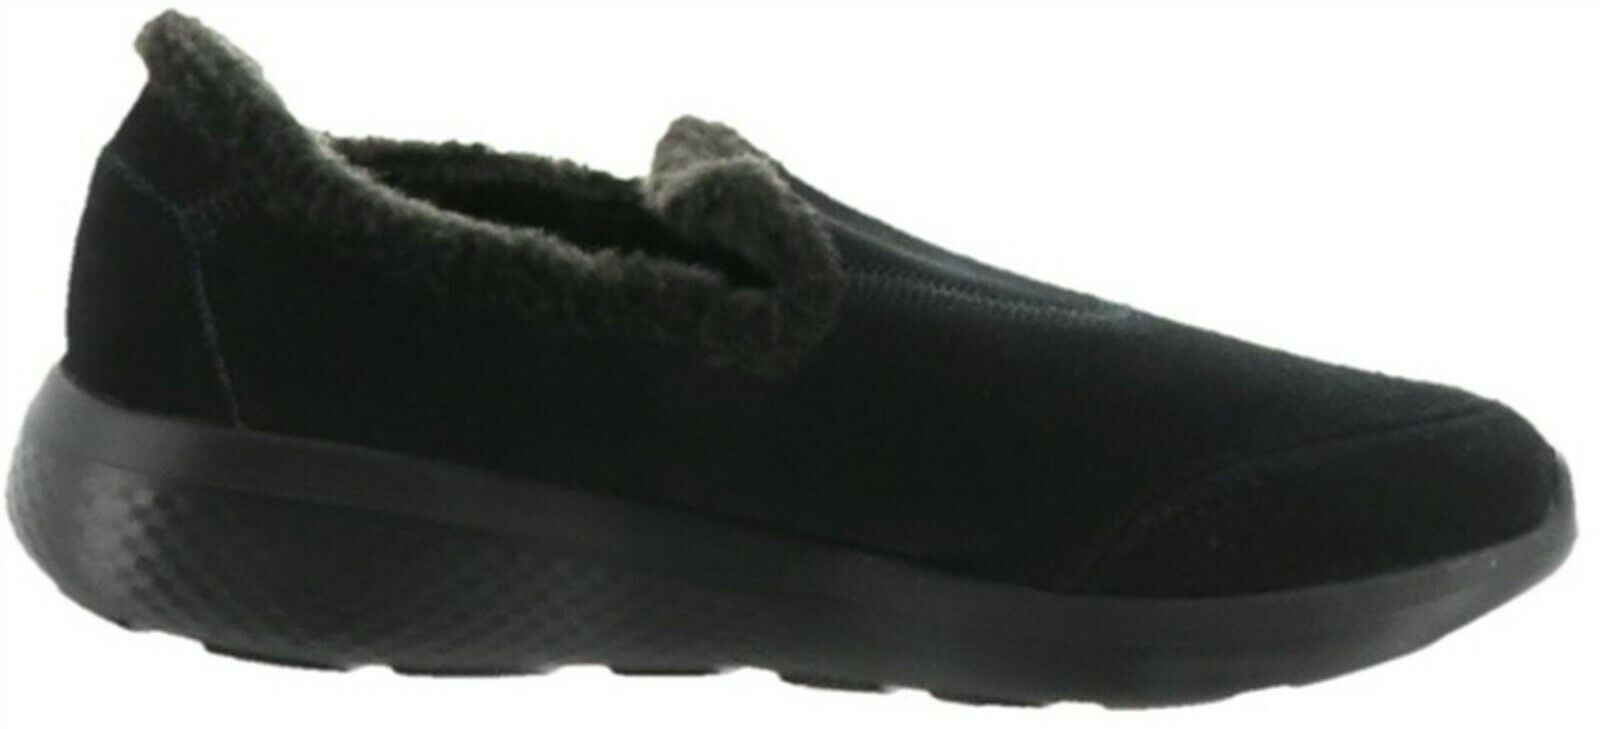 Primary image for Skechers GOwalk Suede Faux Fur Shoes Captivating Black 9M NEW A296619